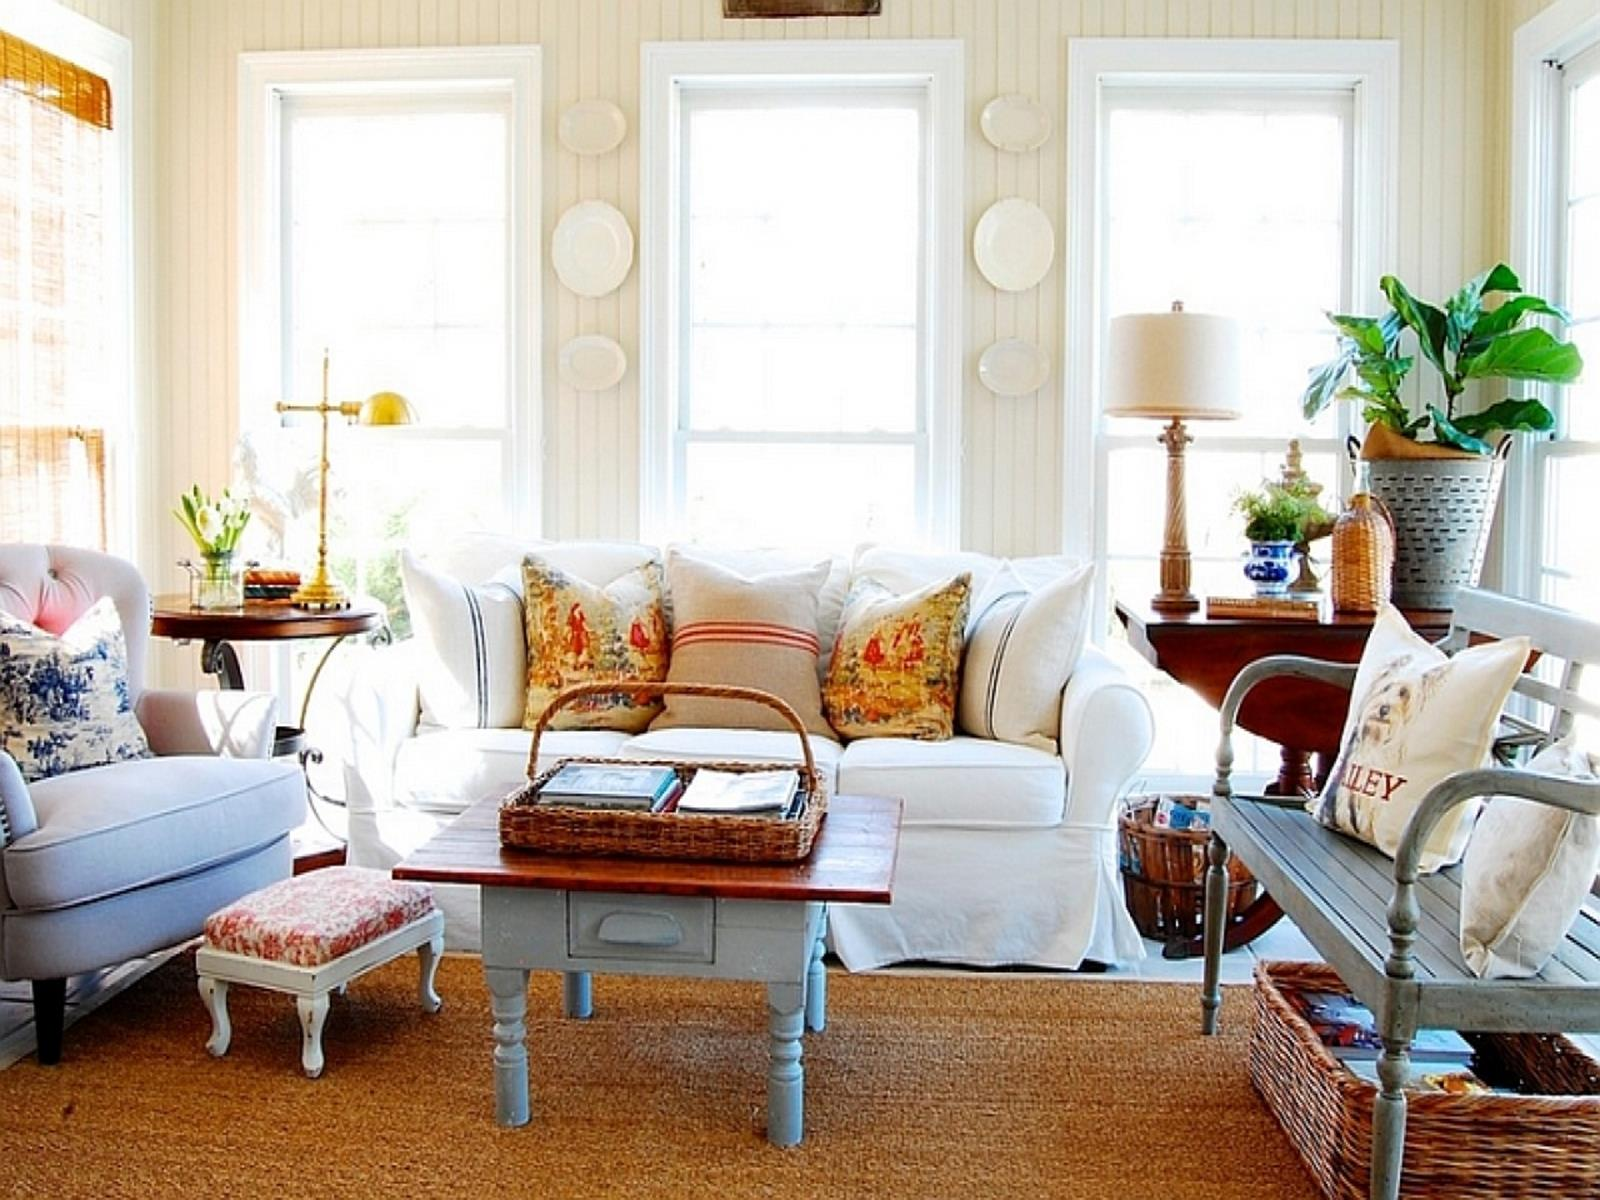 City Chic Living Room Decorating Ideas On a Budget 33